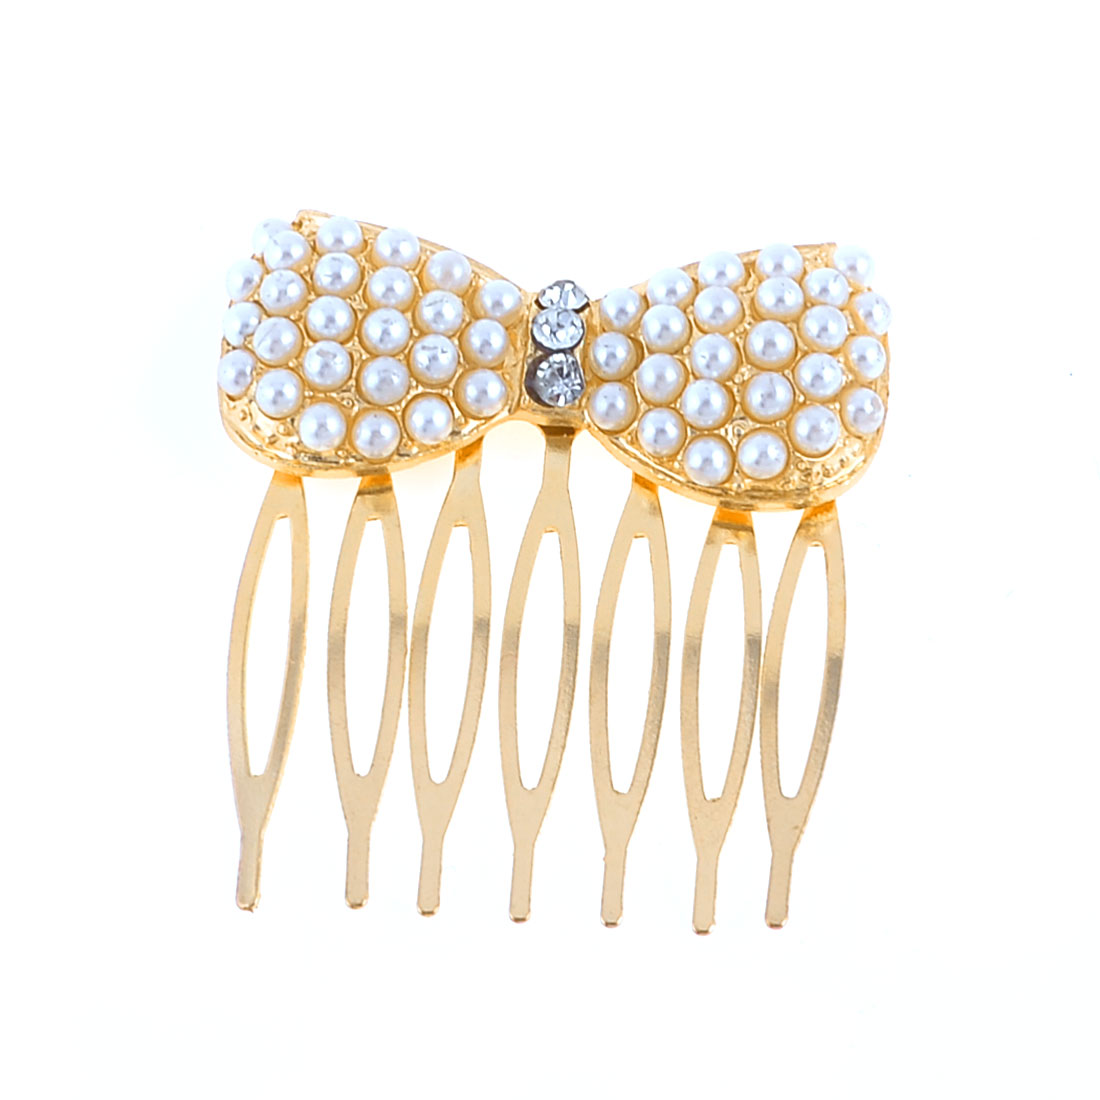 Plastic Beads Detail Gold Tone Metal Bowtie 7 Tooth Comb Hair Clip